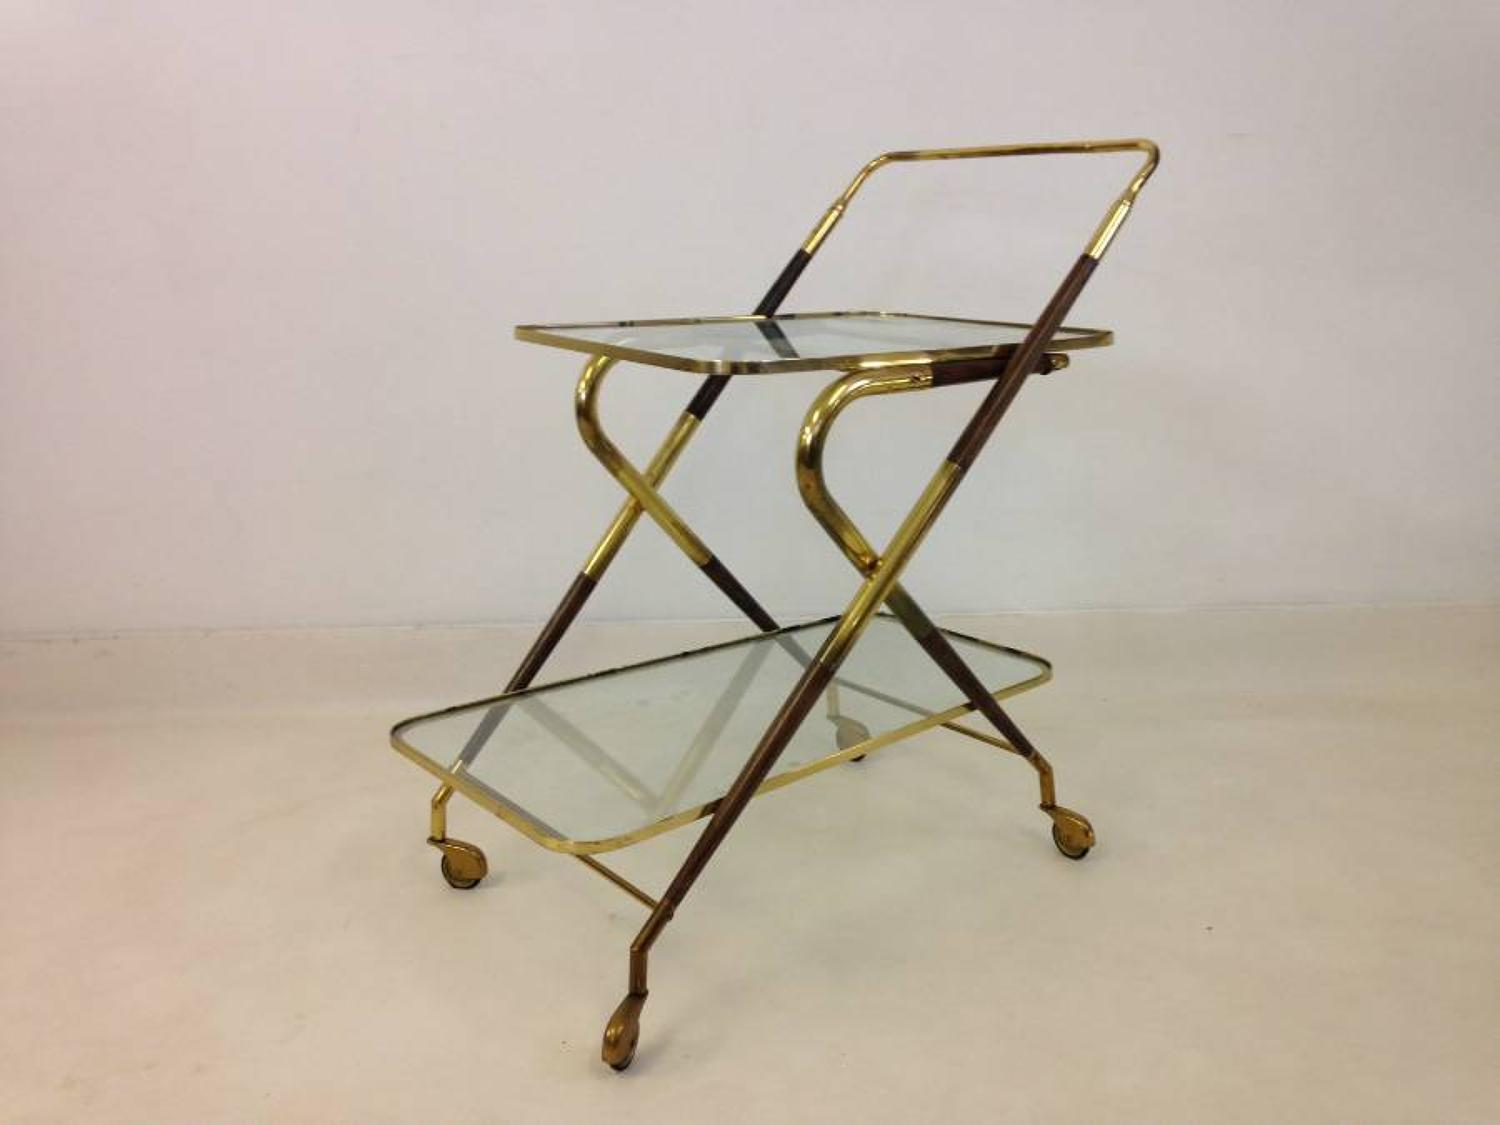 1950s brass and wood tea trolley by Cesare Lacca